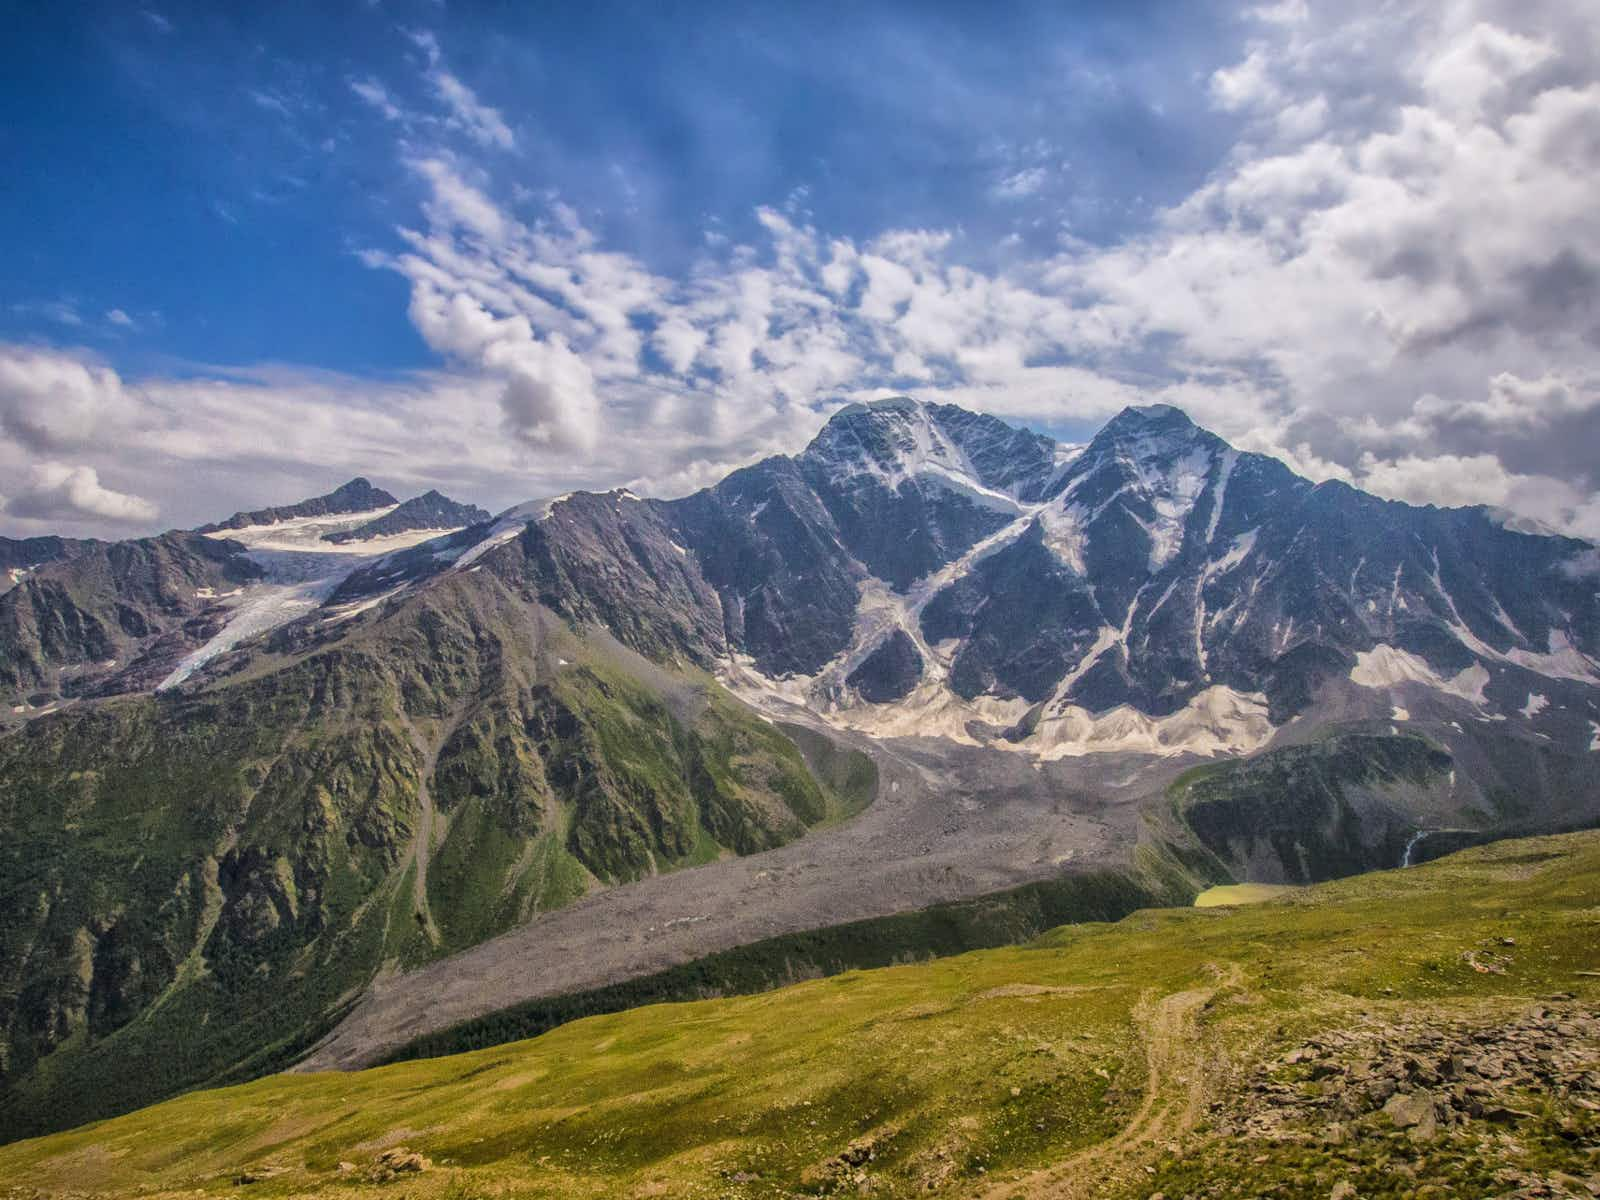 The view across the Baksan Valley from an acclimatisation trek on Cheget Peak © Peter Watson / Lonely Planet